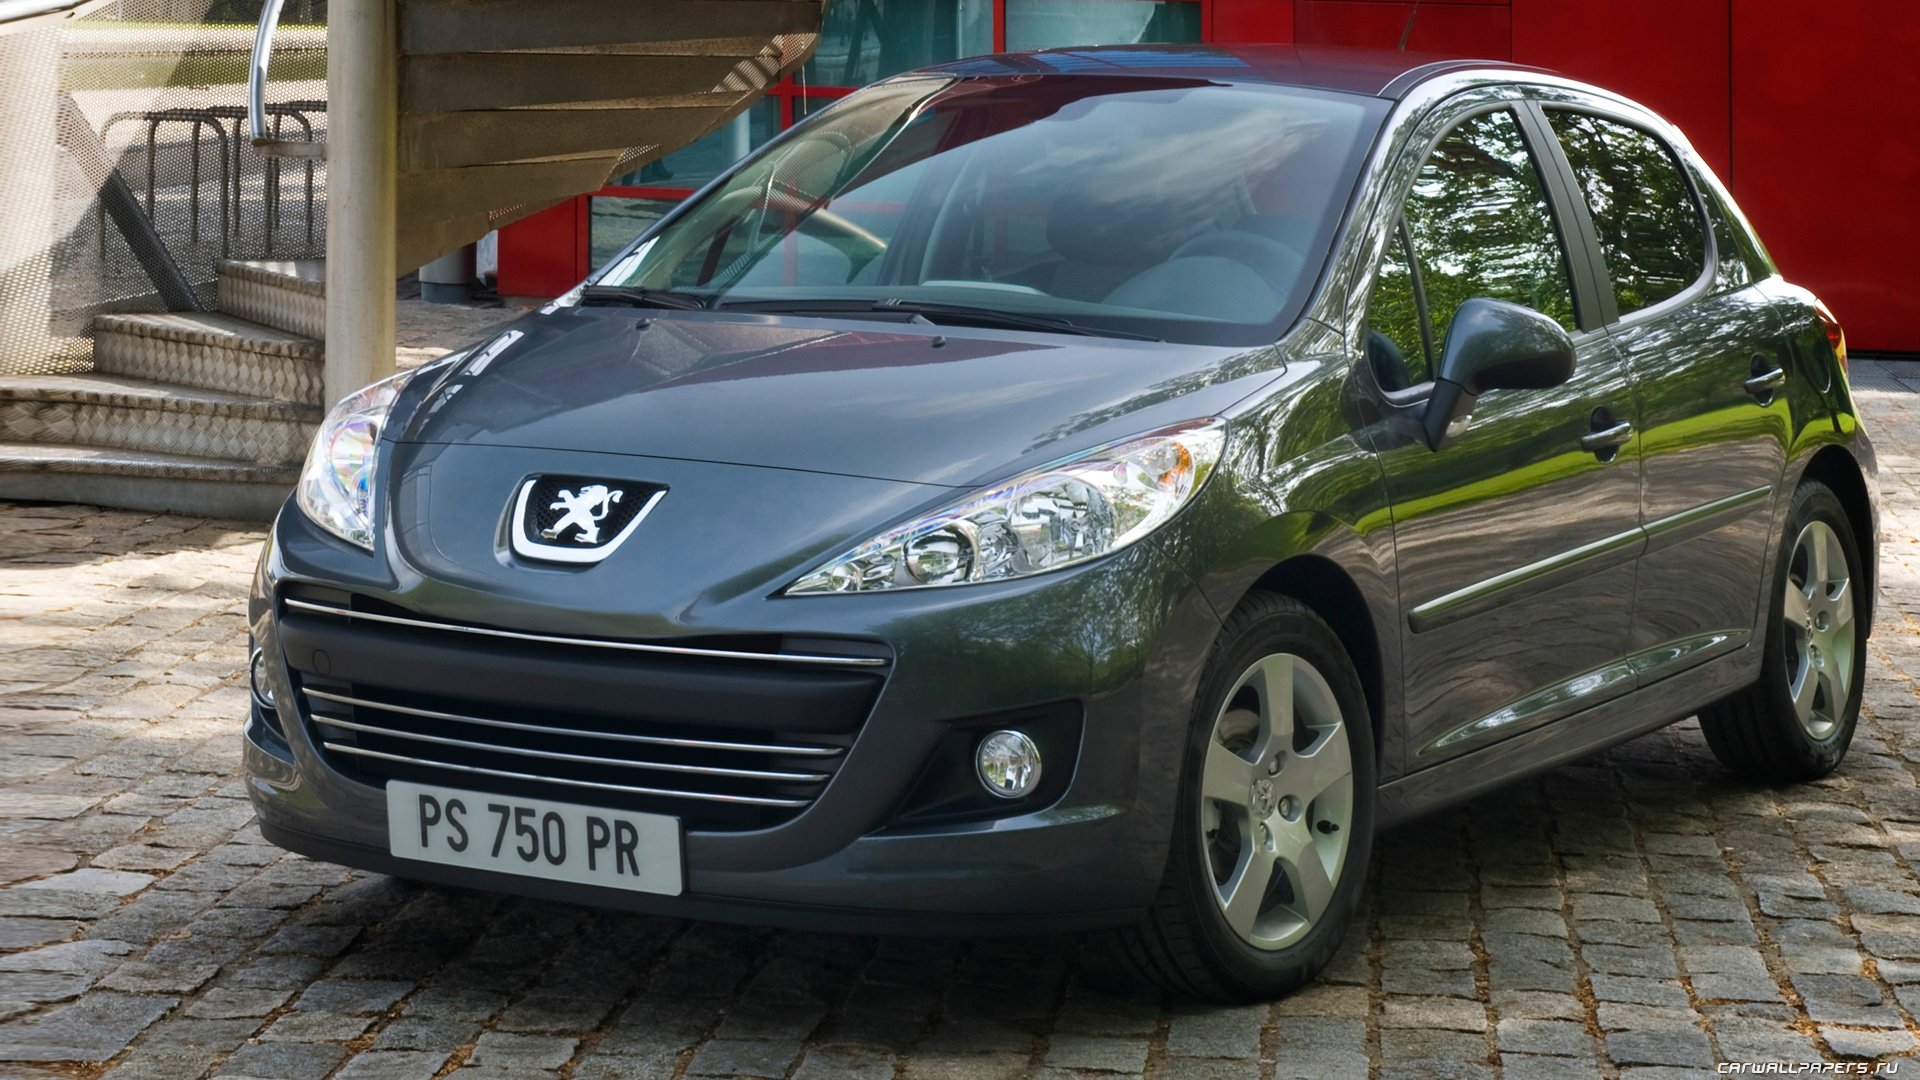 2009 peugeot 207 pictures information and specs auto. Black Bedroom Furniture Sets. Home Design Ideas